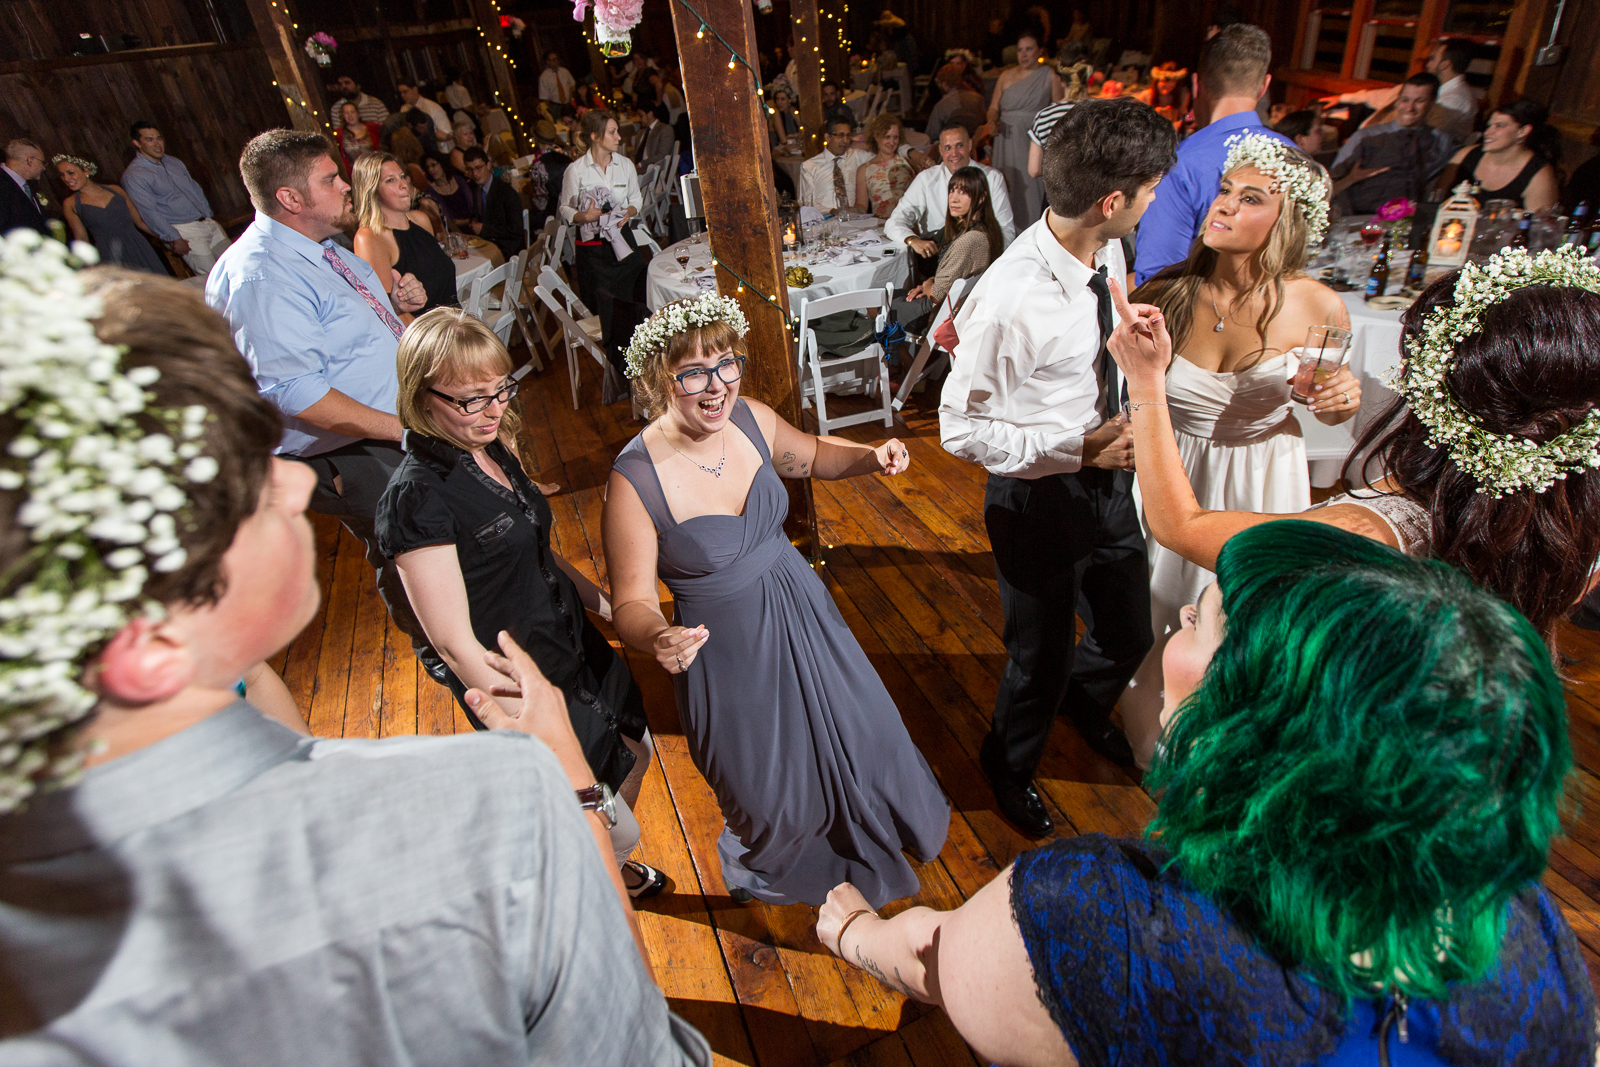 Four_Wings_Photography_Wedding_Red_Barn_at_Hampshire_College-56.jpg